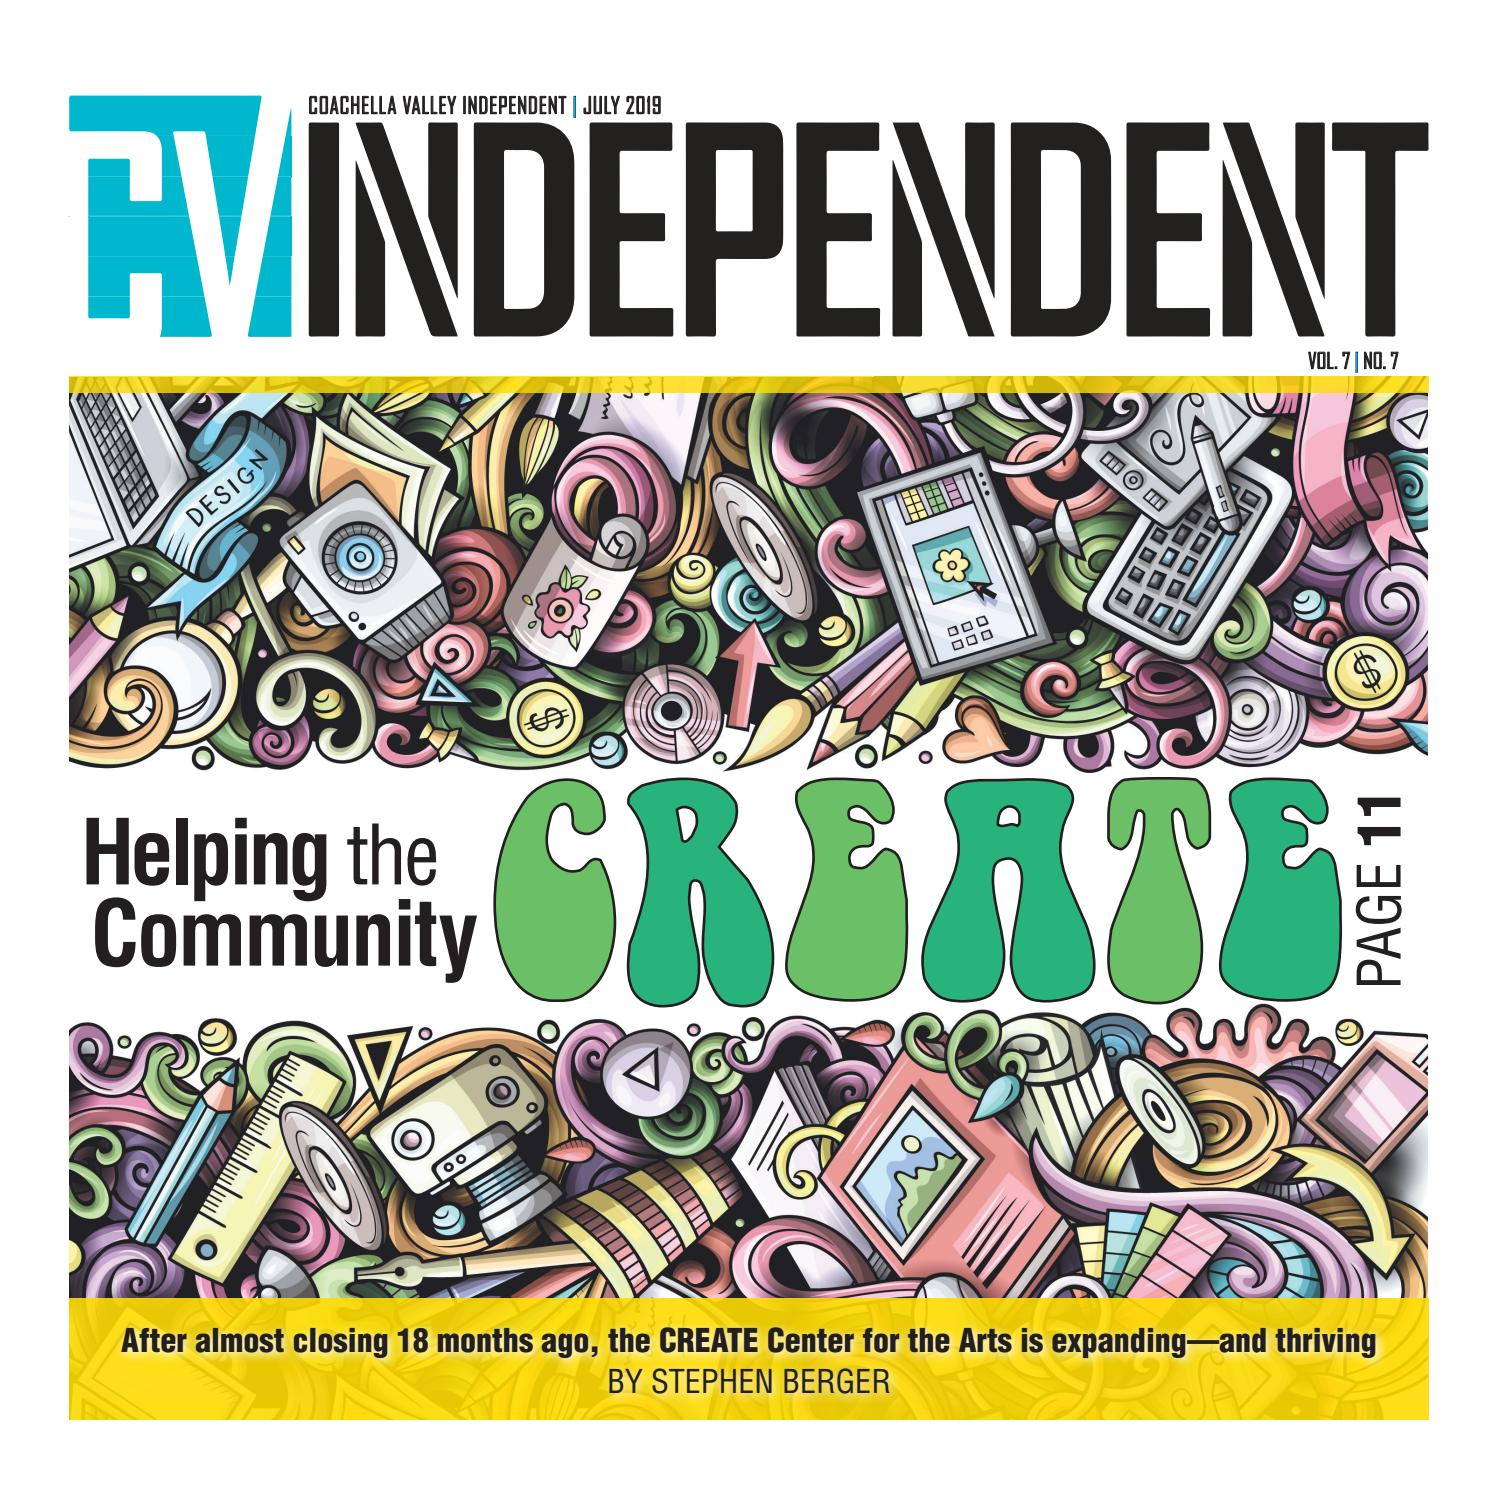 Coachella Valley Independent July 2019 By Coachella Valley Independent Issuu Know another solution for crossword clues containing dadaist jean? coachella valley independent july 2019